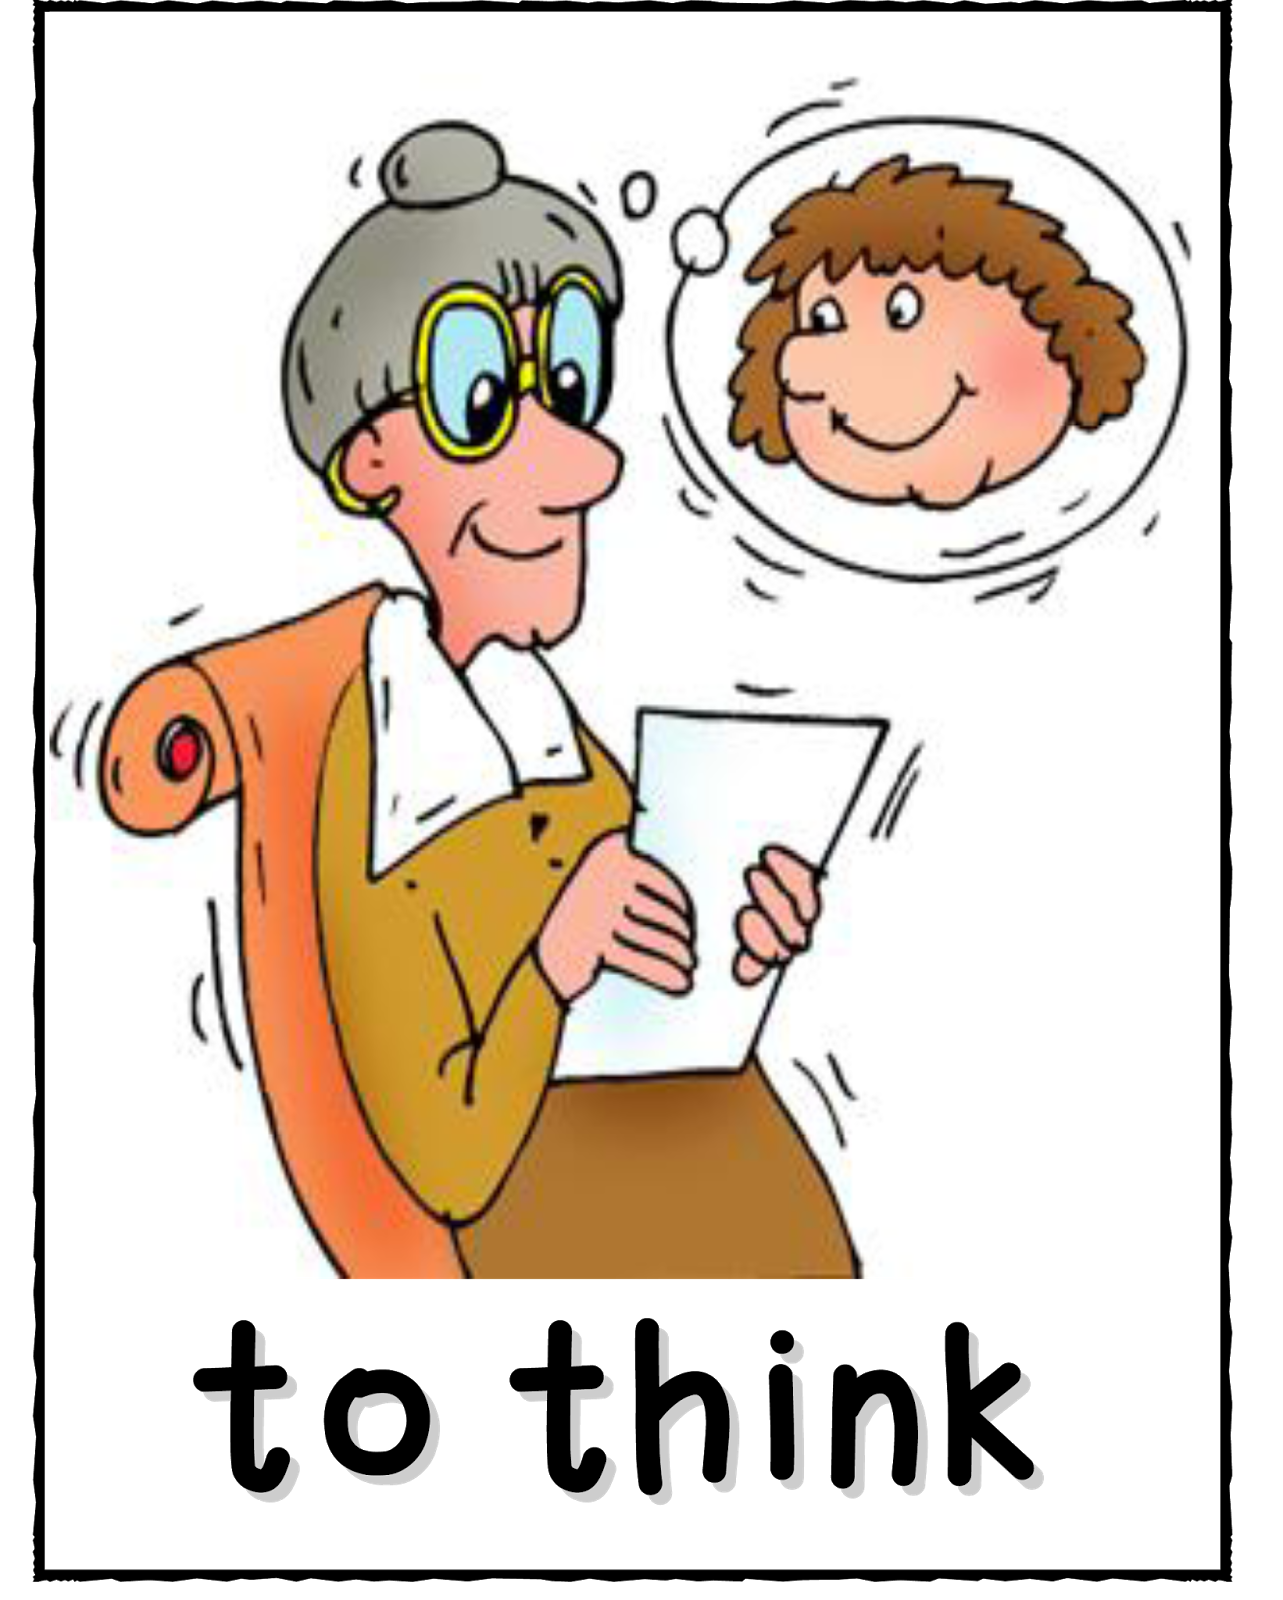 Free Verbs Cliparts, Download Free Clip Art, Free Clip Art on.